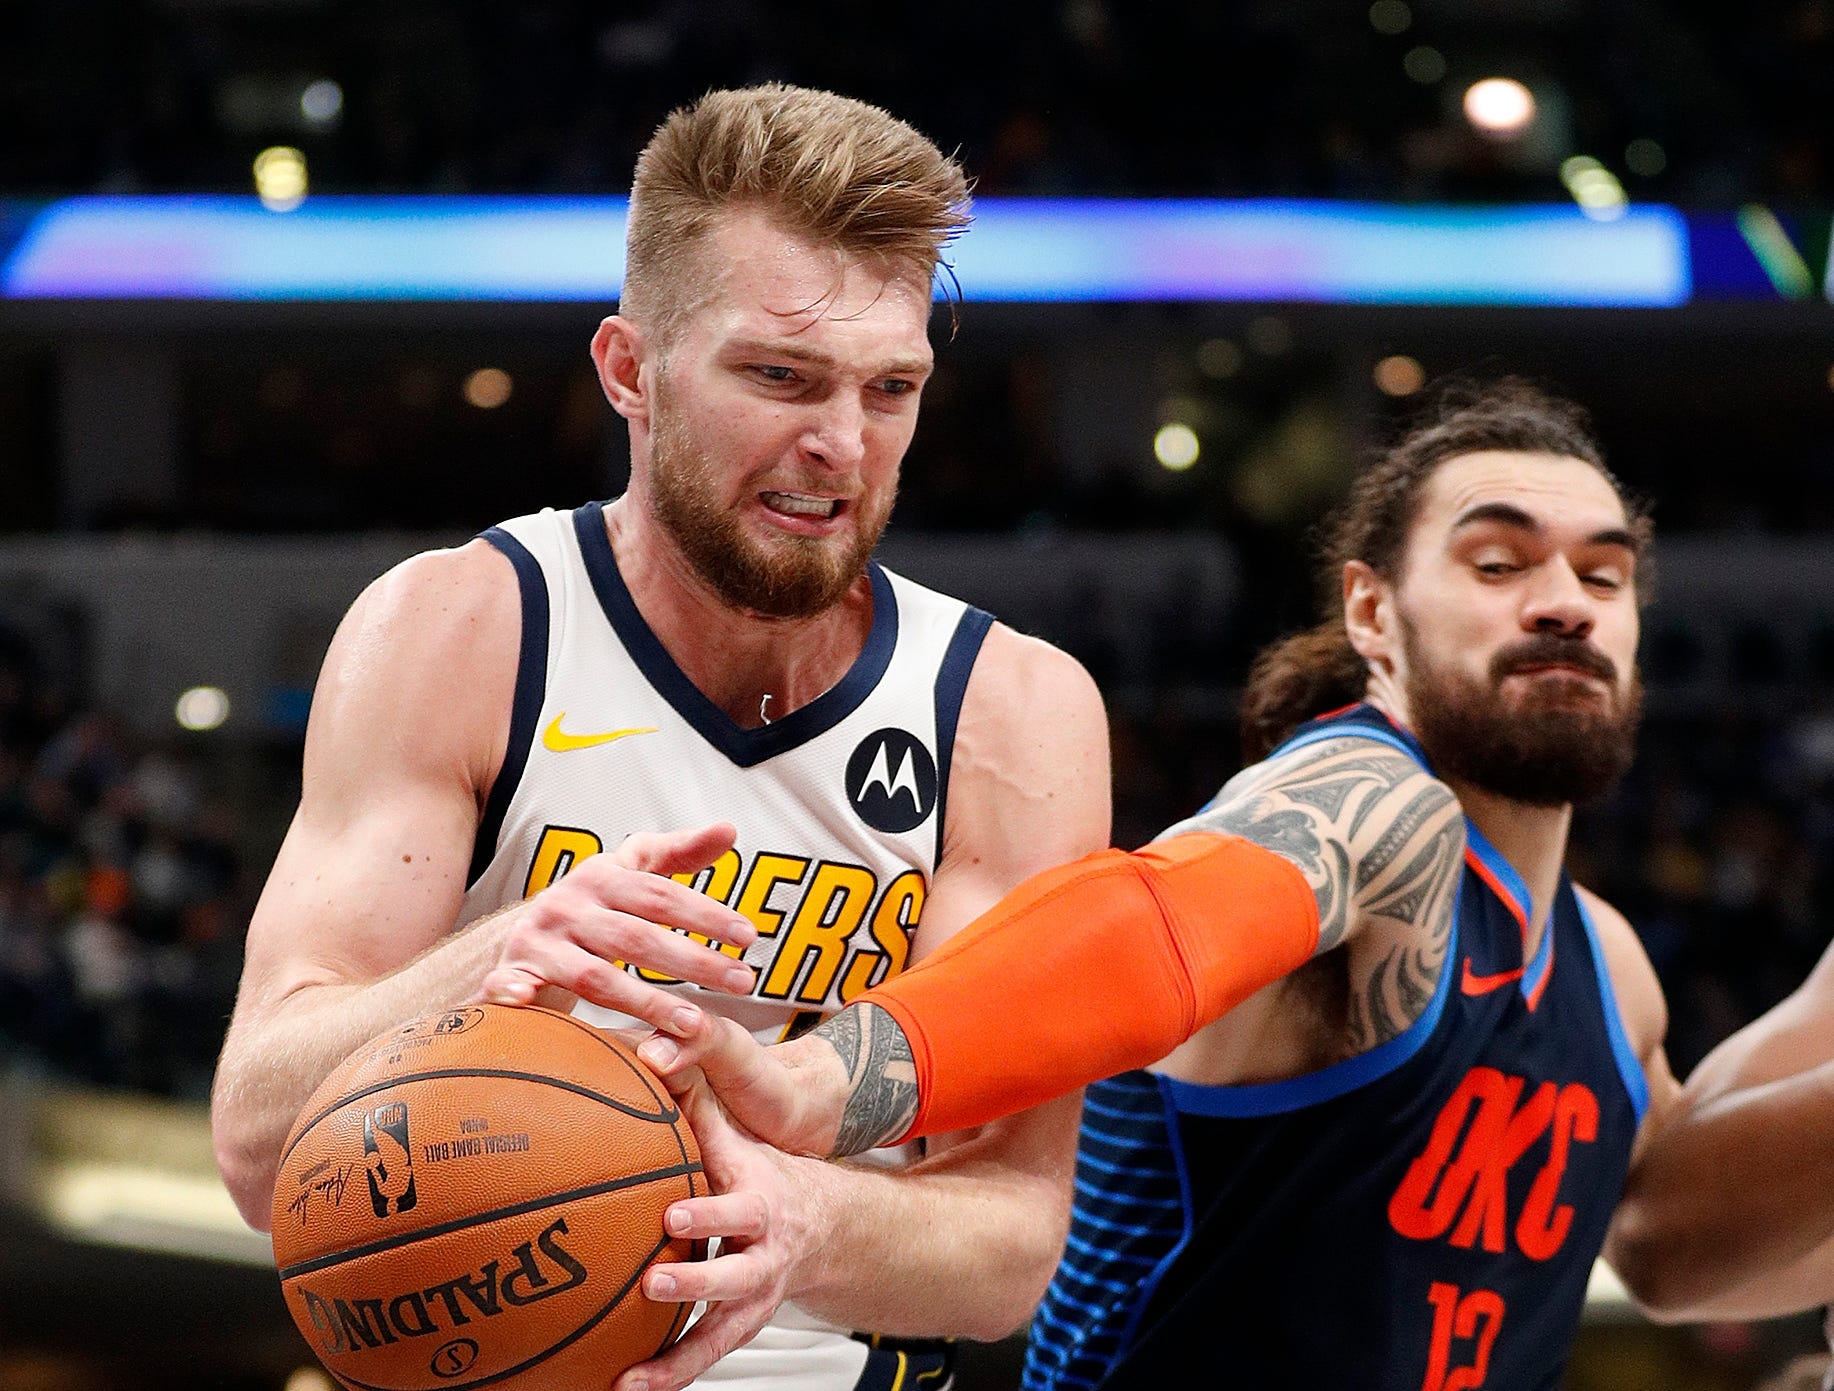 Indiana Pacers forward Domantas Sabonis (11) pulls a rebound away from Oklahoma City Thunder center Steven Adams (12) in the second half of their game at Bankers Life Fieldhouse on Thursday, Mar. 14, 2019. The Pacers defeated the Thunder 108-106.